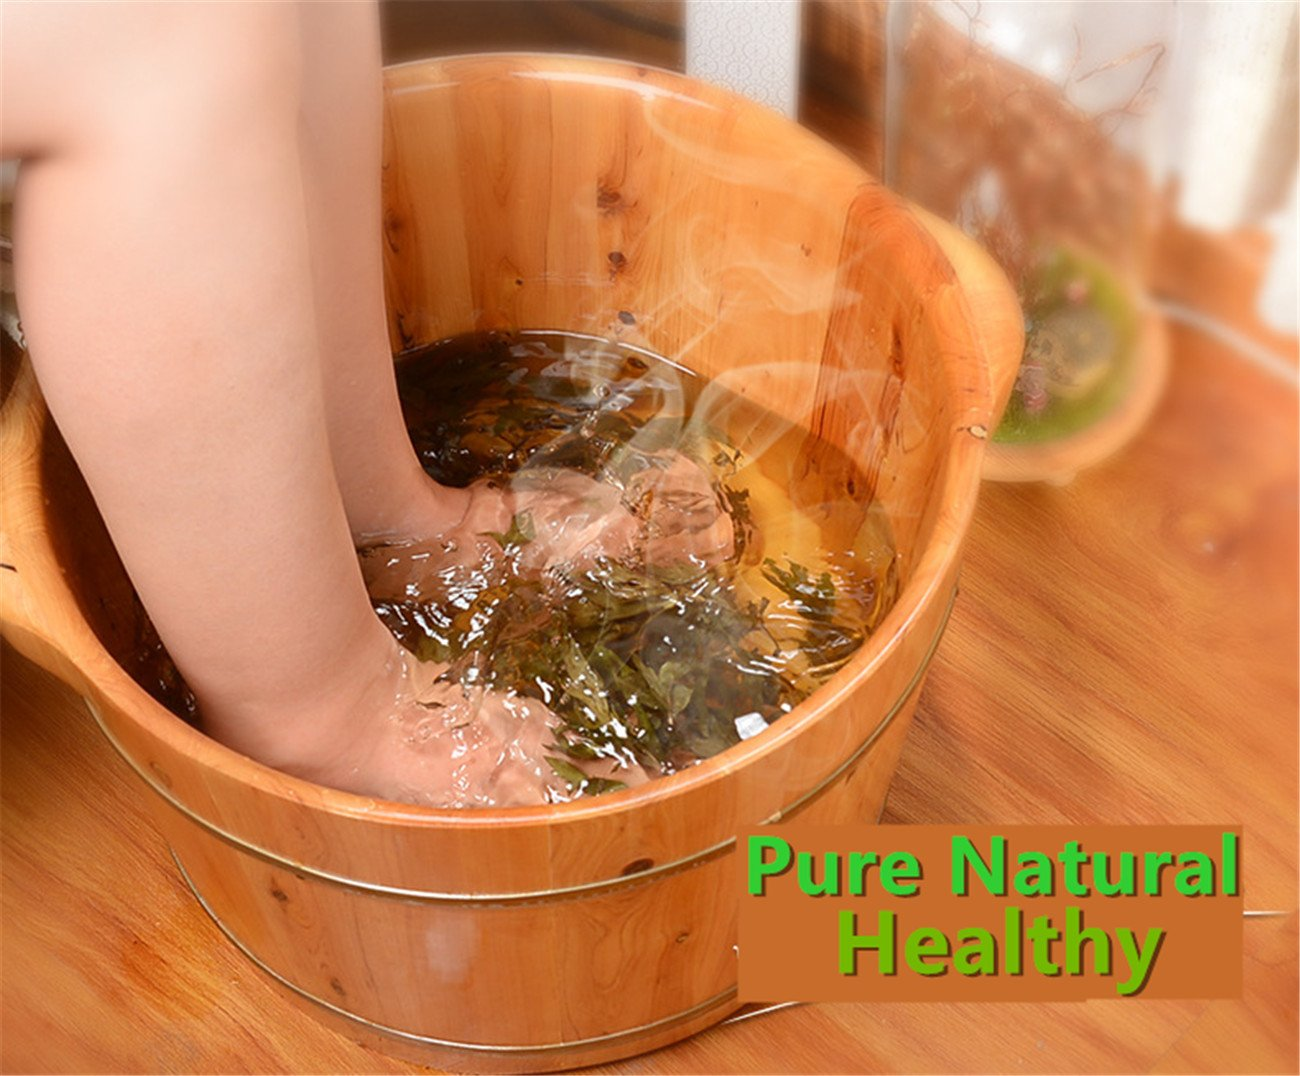 Zzooi Pure Natural Foot Bath Mugwort Dry Wormwood Suitable for Foot Soak 500g//17.6oz